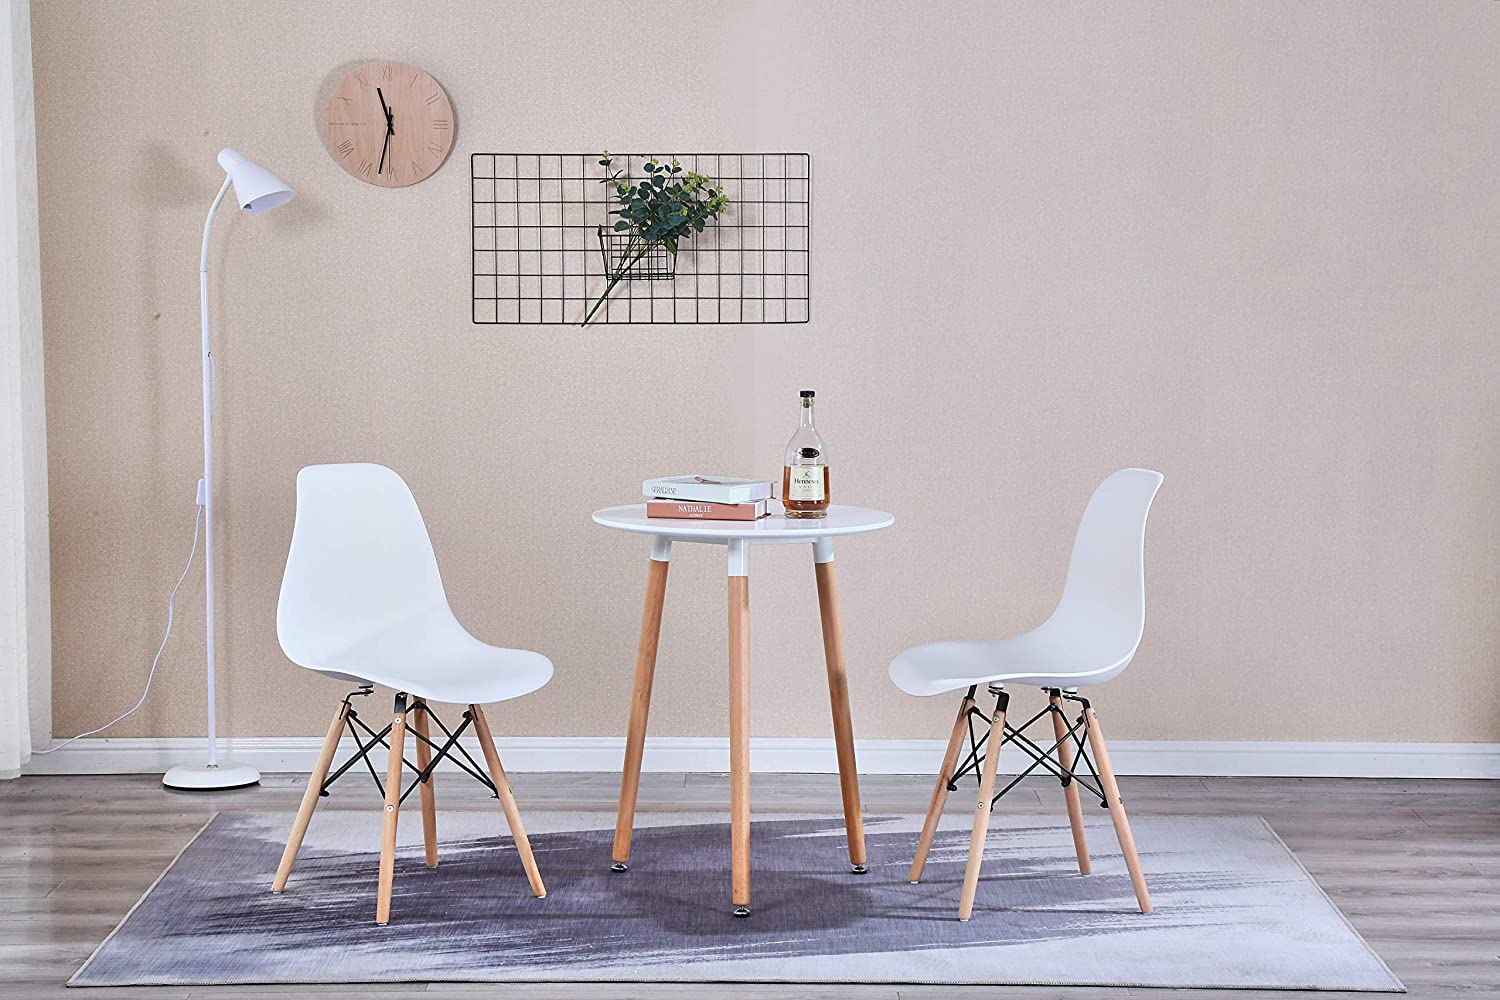 RayGar Lite Dining Table and Chairs 2 Eiffel Style Plastic Designer Inspired Chairs and Round Dining Table Grey